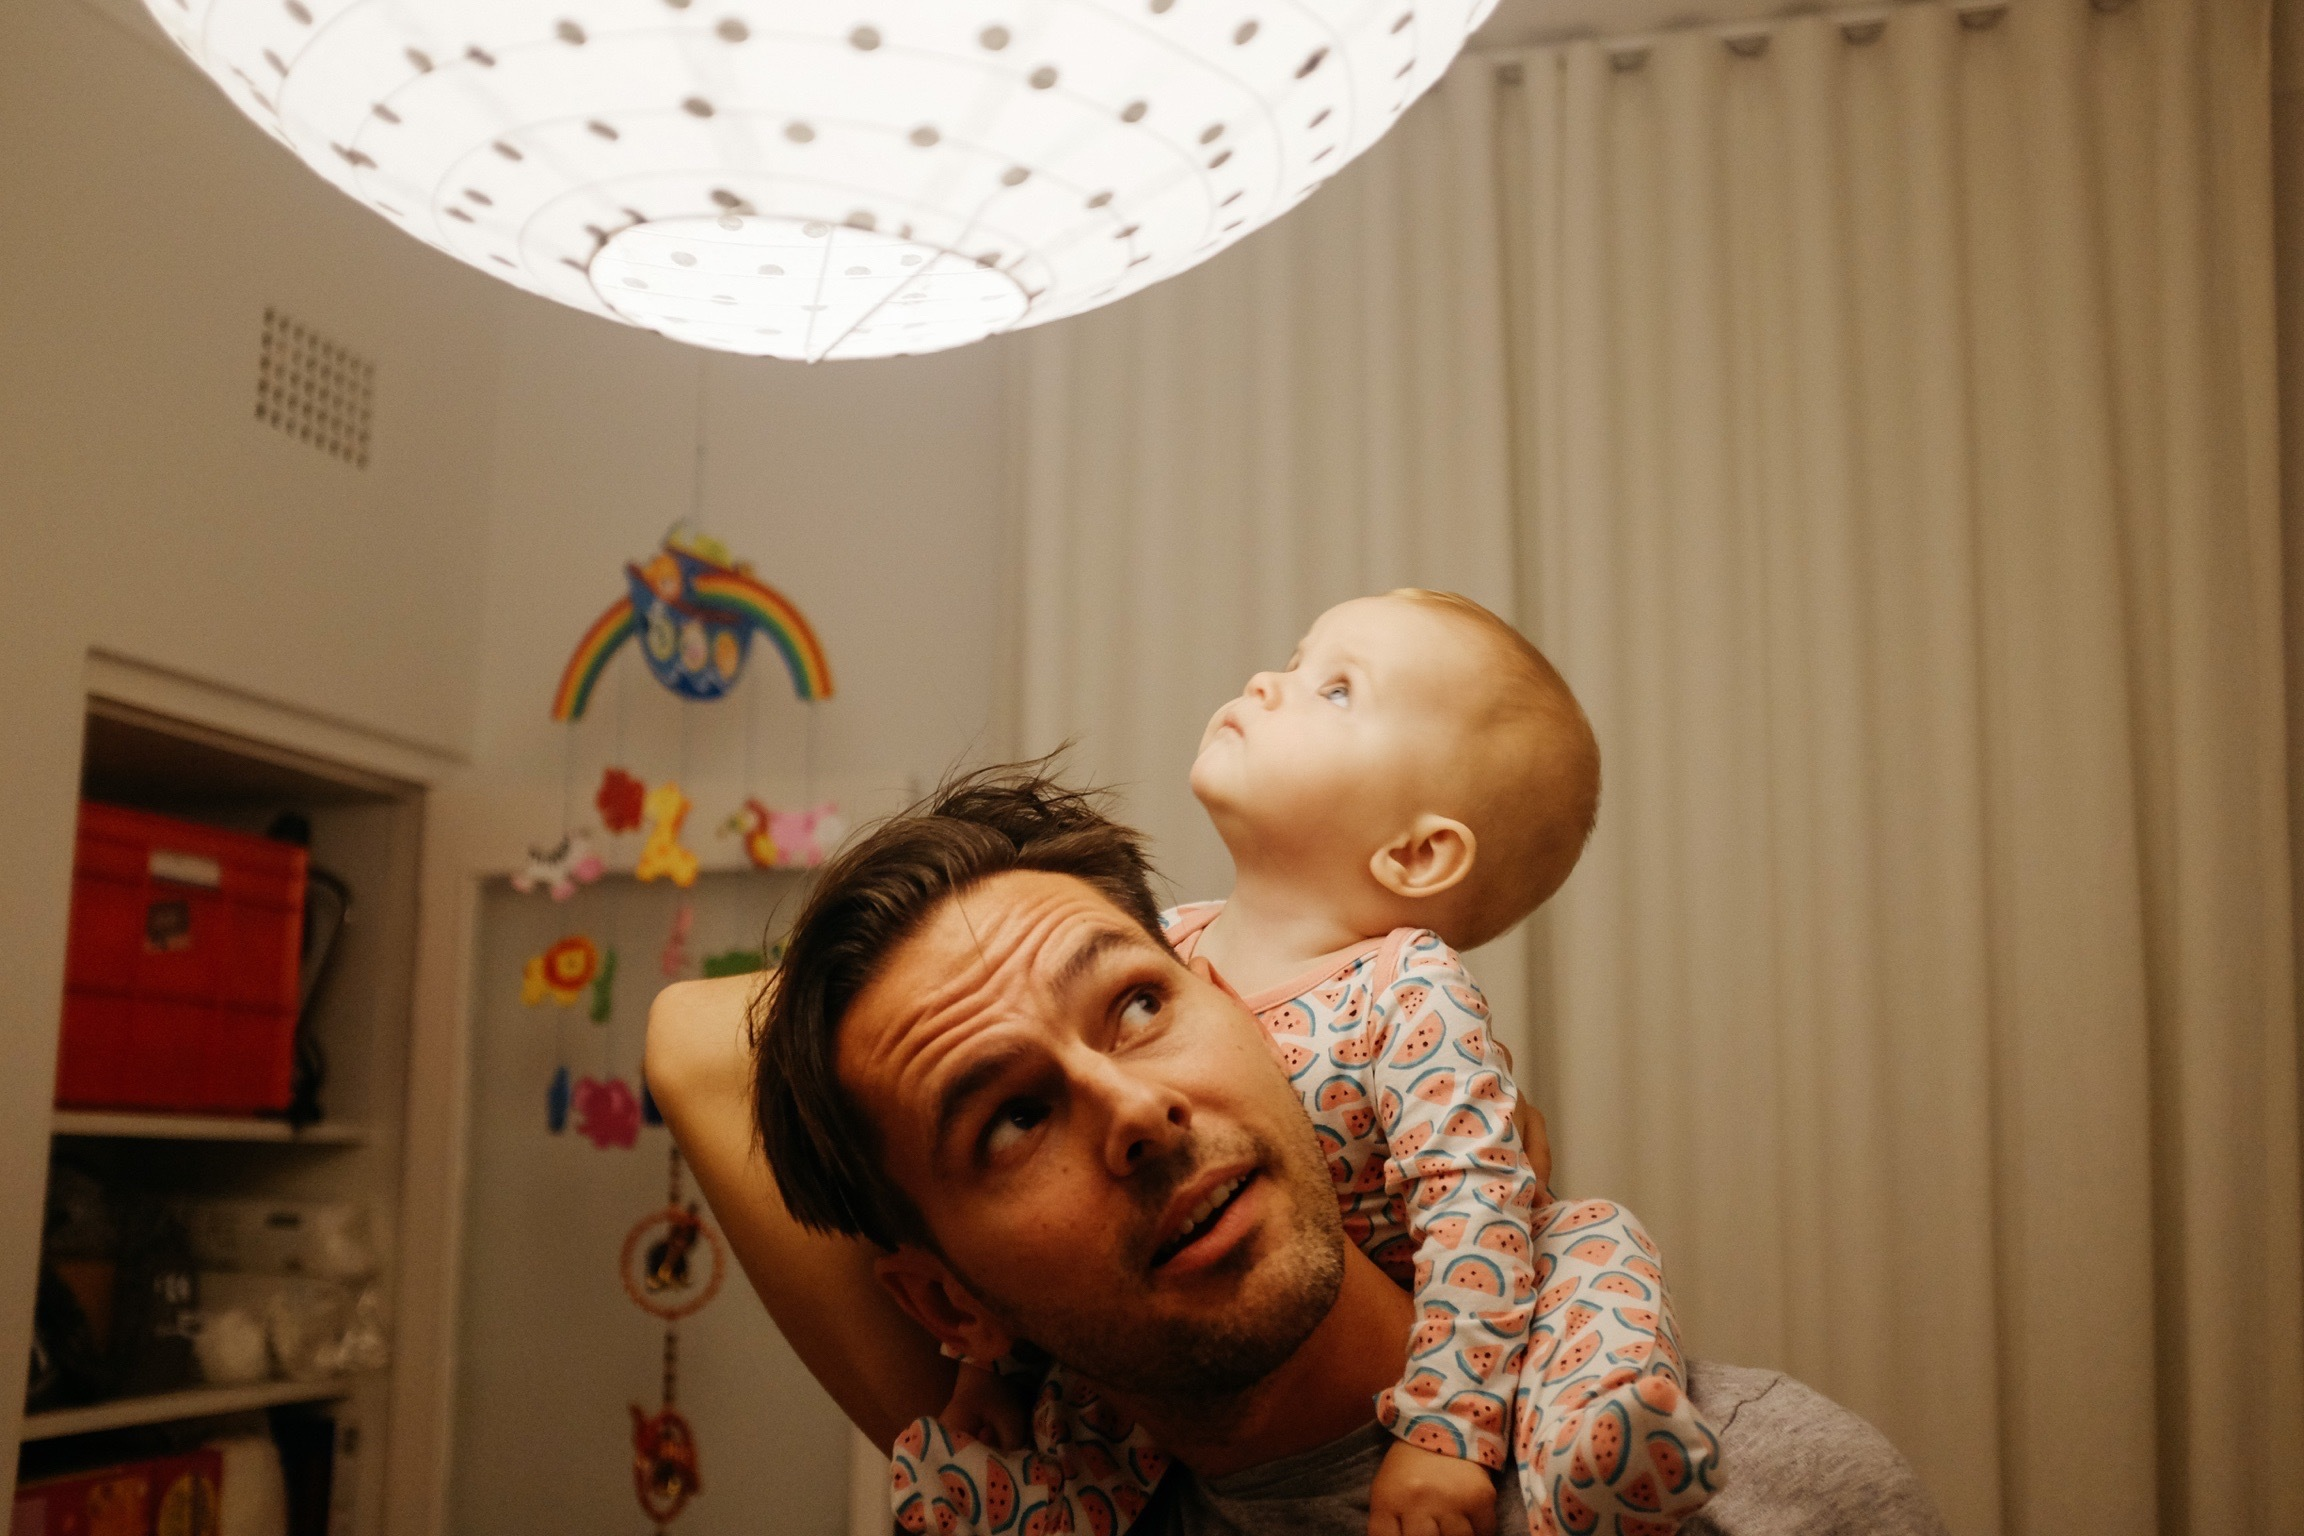 Daniel Boud and his Daughter Lilya under a lamp